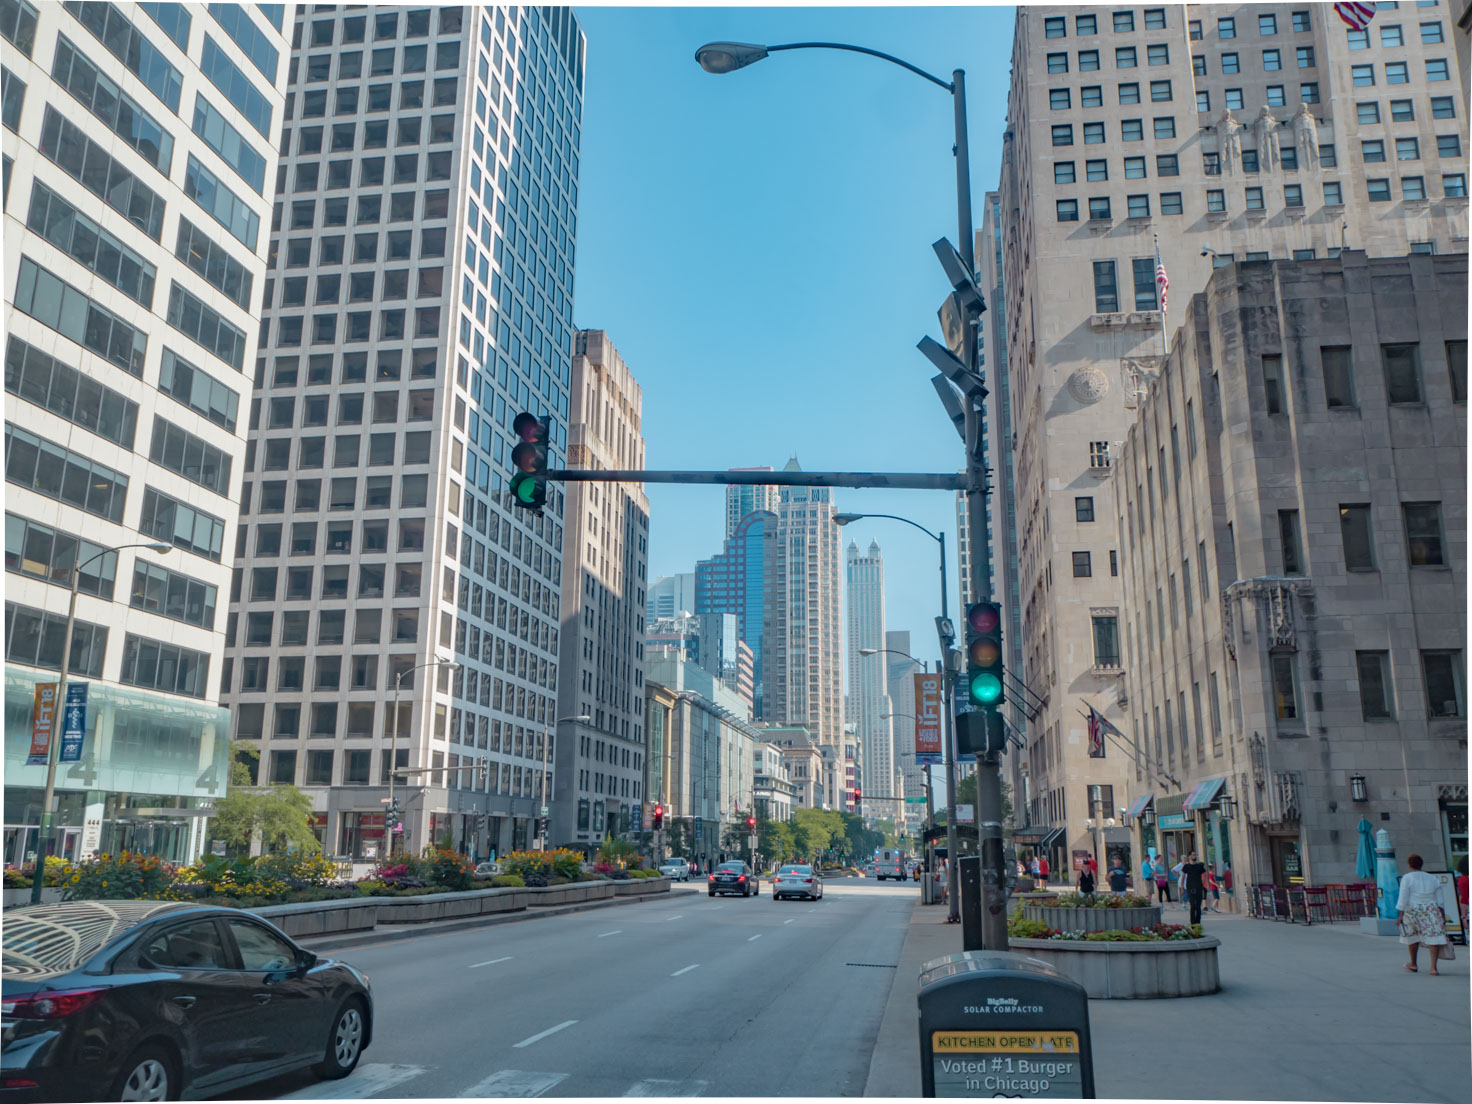 City mini guide to Chicago by Chic Journal blog